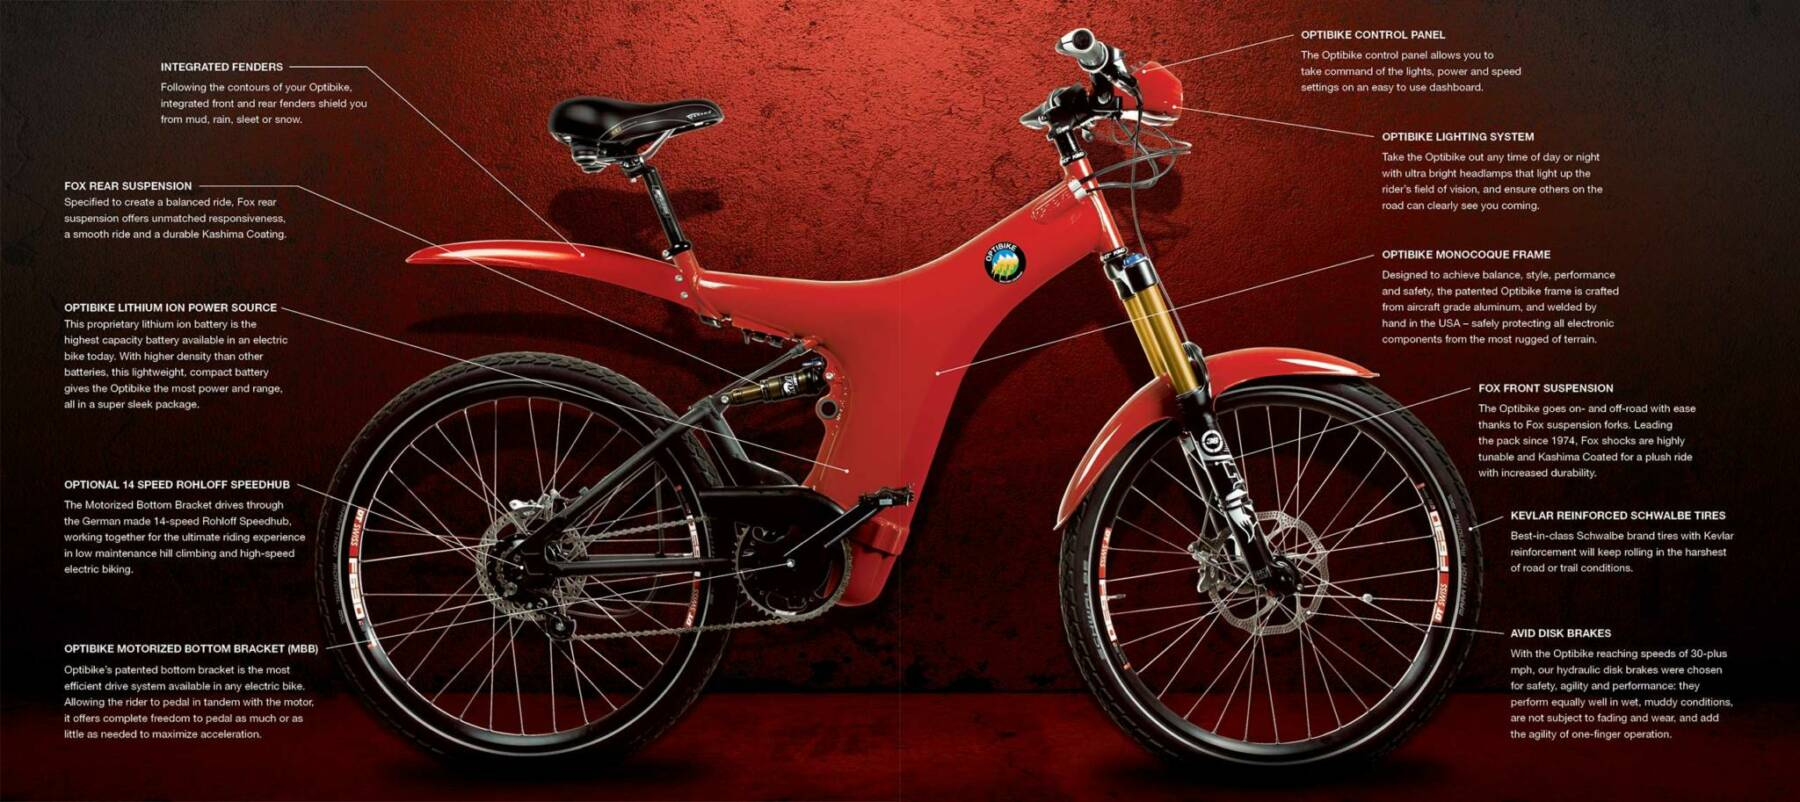 Optibike R8 electric bike with info overlayed for key parts of the bike